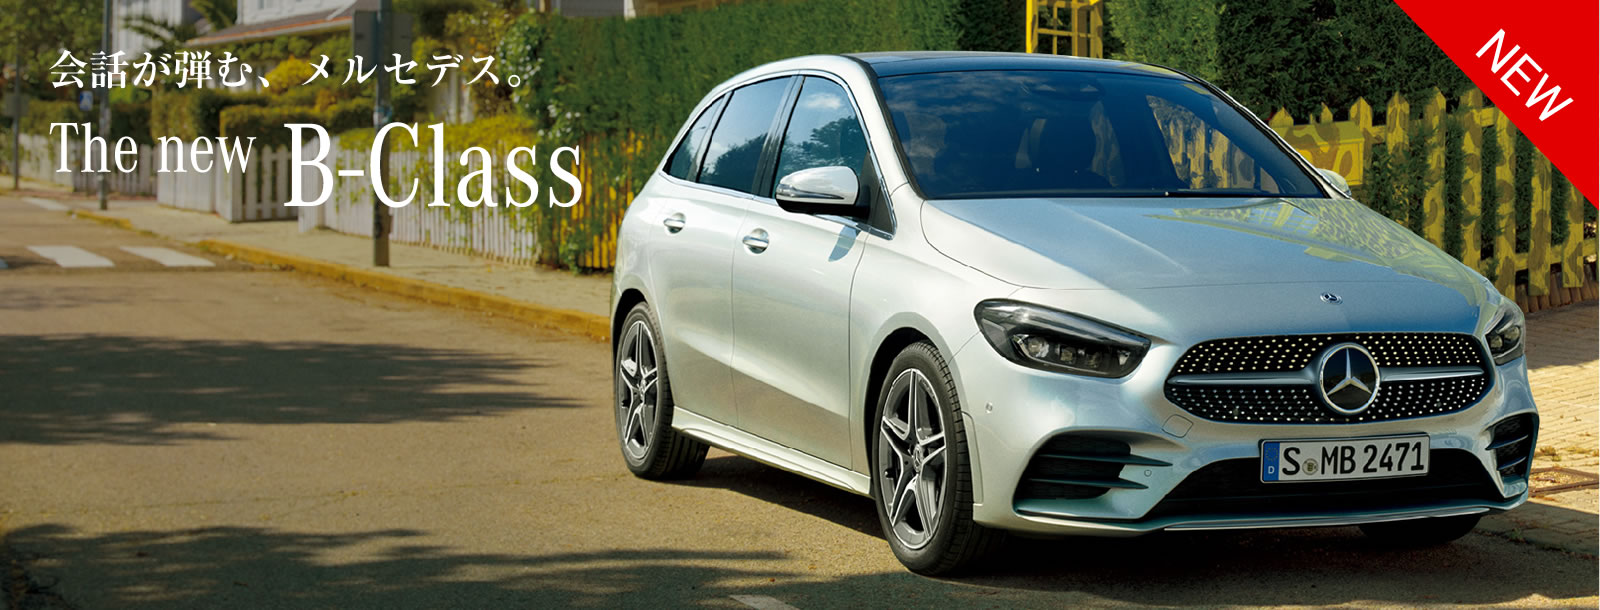 The new B-Class